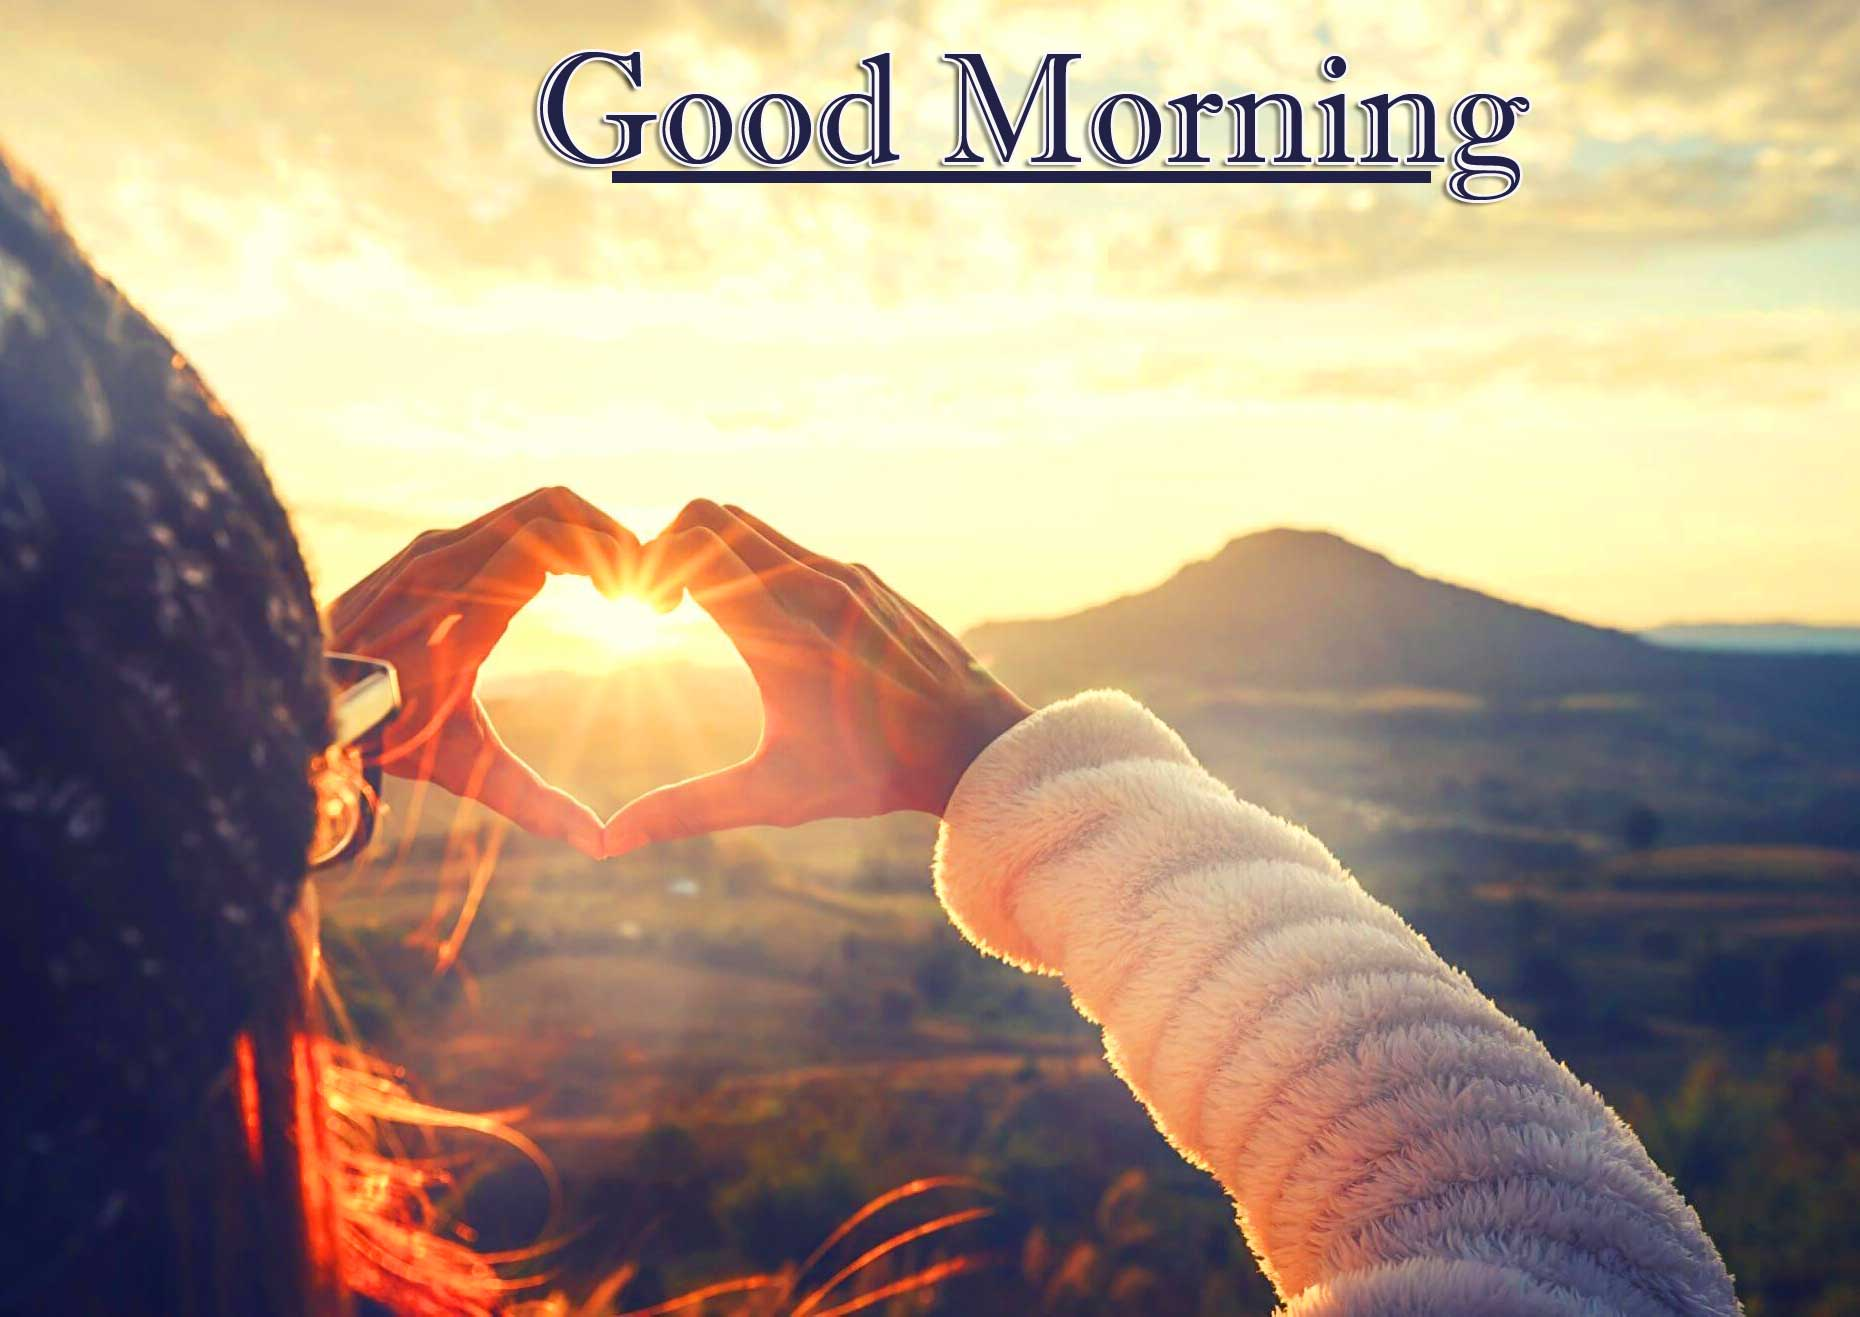 Good Morning Wishes With Sunrise photo Free Download